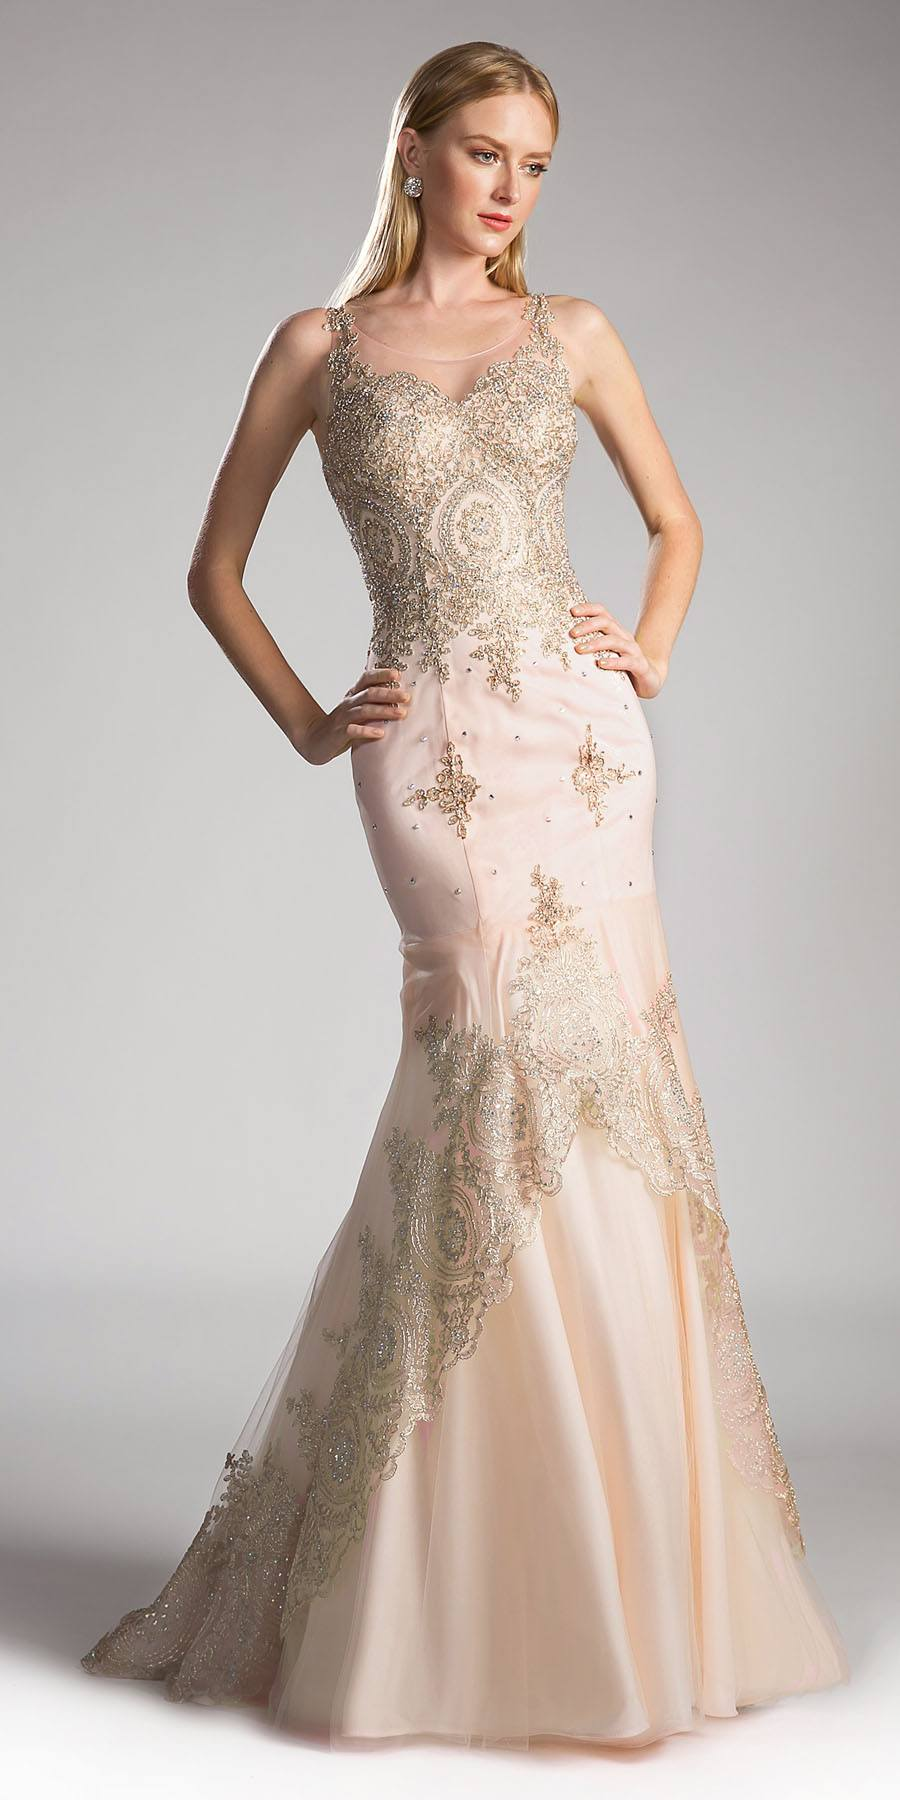 b0f38727888 Champagne Embroidered Long Mermaid Prom Dress Lace Up Back. Tap to expand